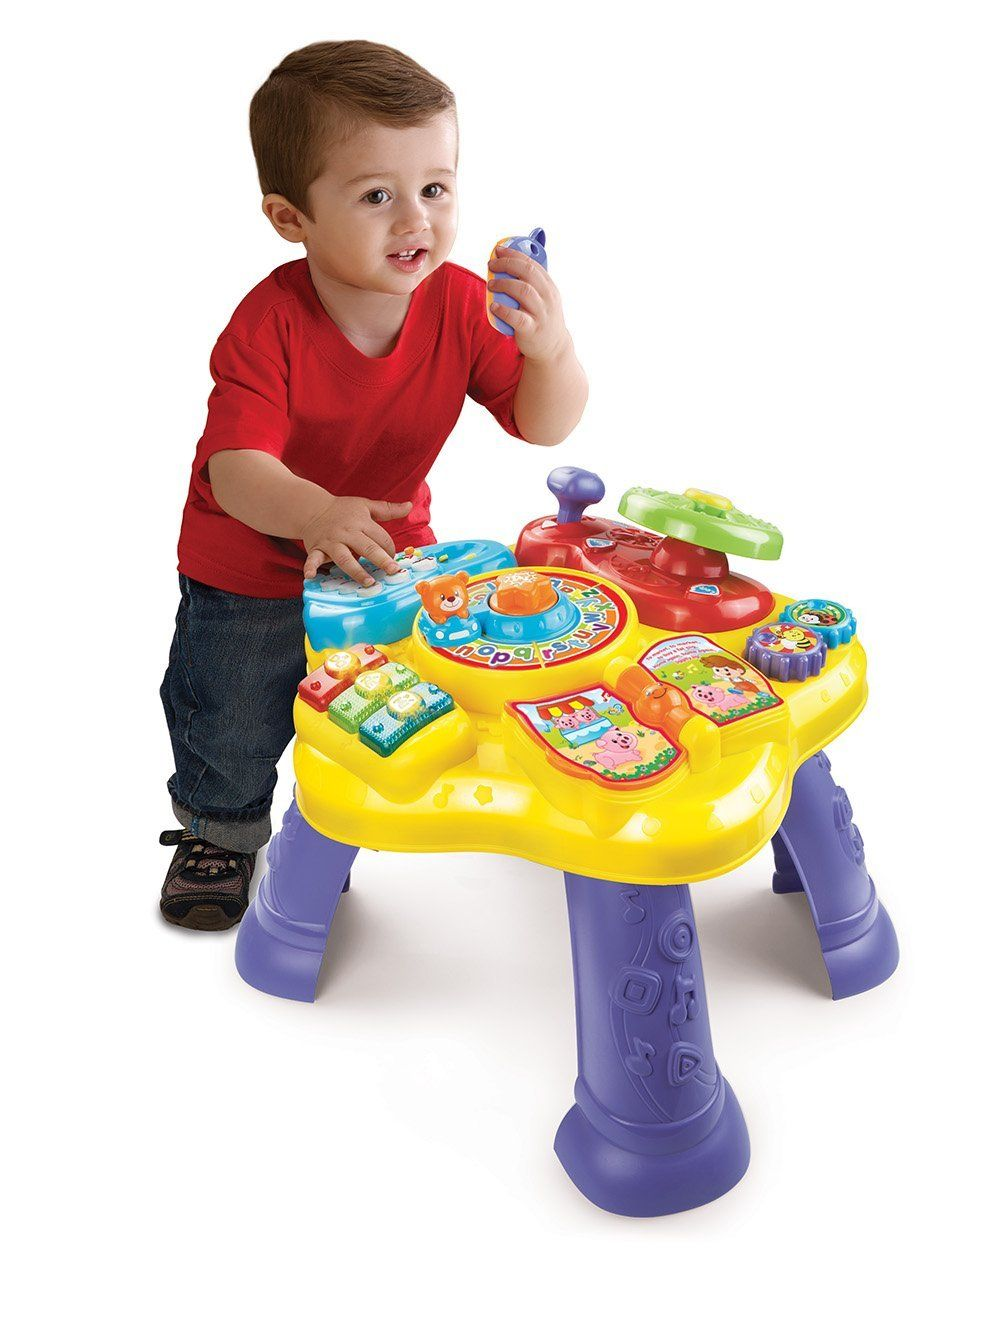 LeapFrog Learn and Groove Musical Table Activity Center. Magic-Star-Learning -Table-Baby-Activity-Set-EDUCATIONAL-Toy-VTech-Floor-Play-NEW